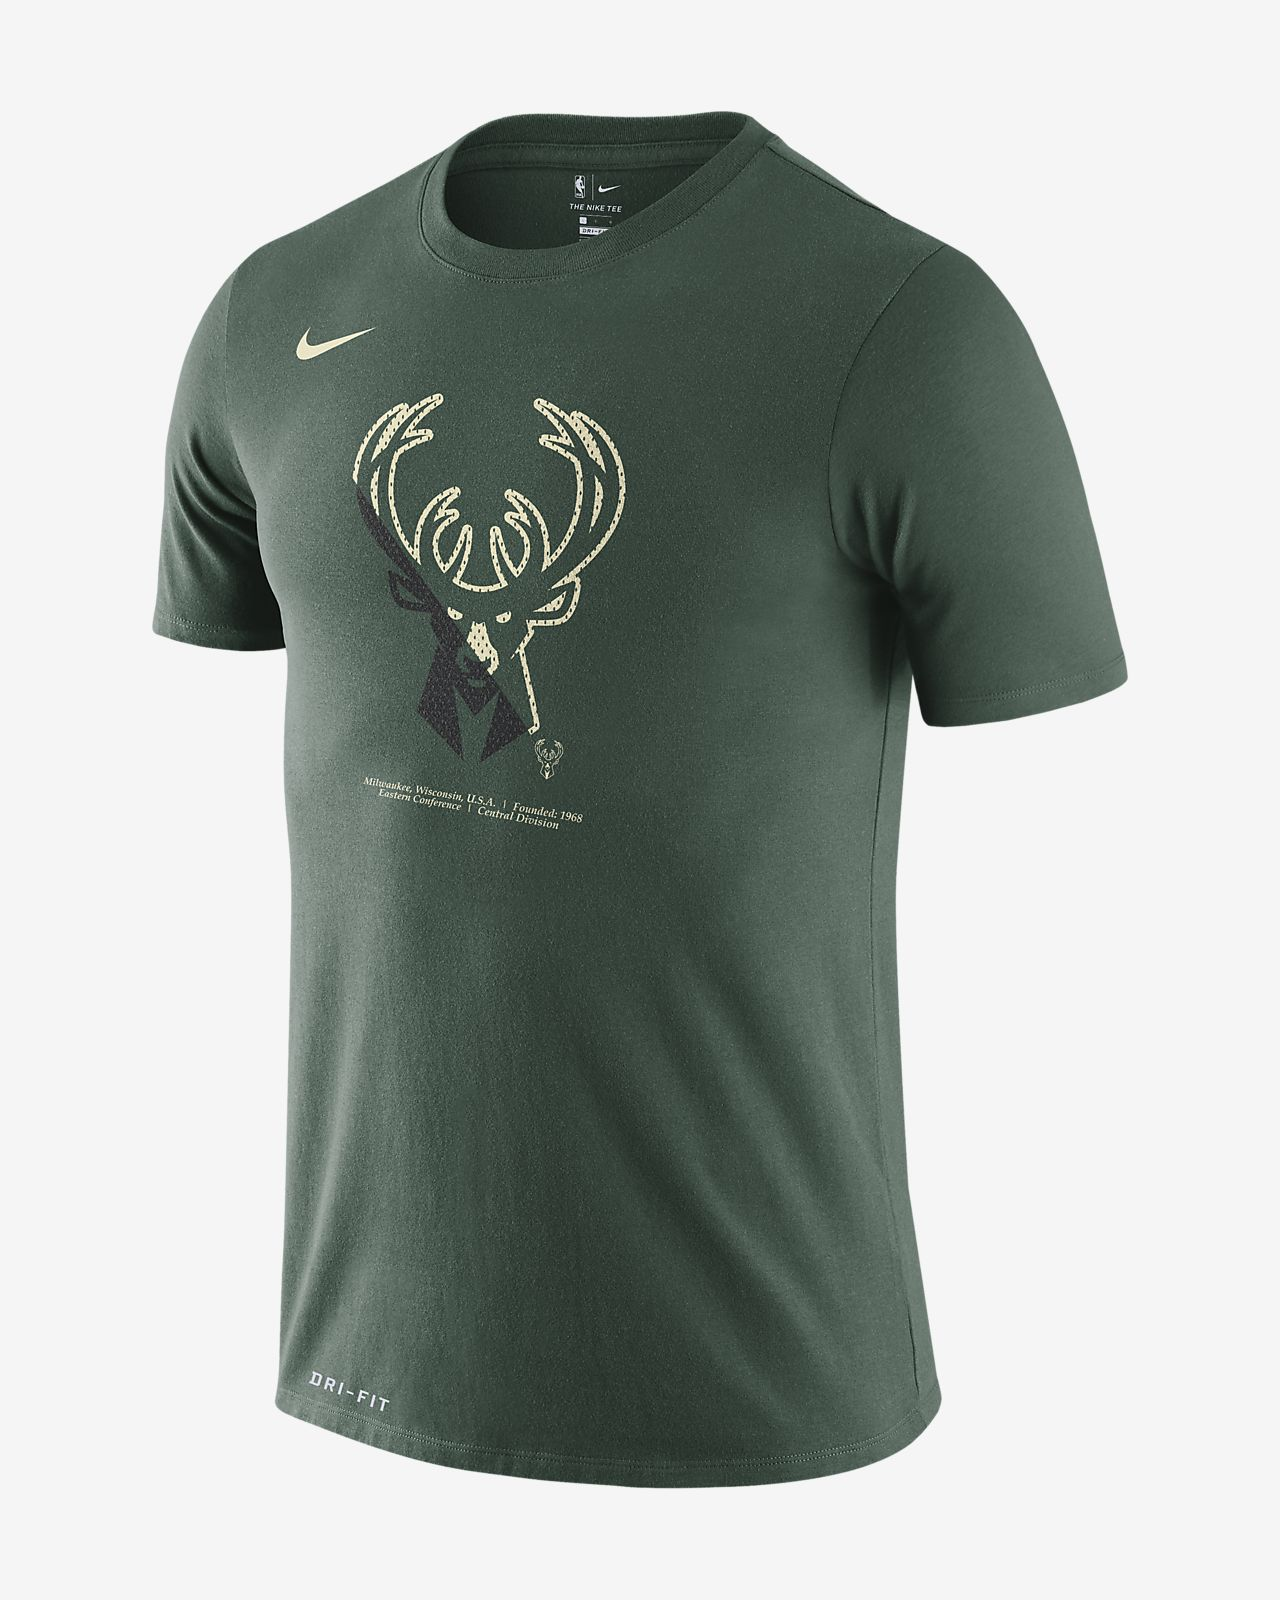 Milwaukee Bucks Nike Dri-FIT Men's NBA T-Shirt